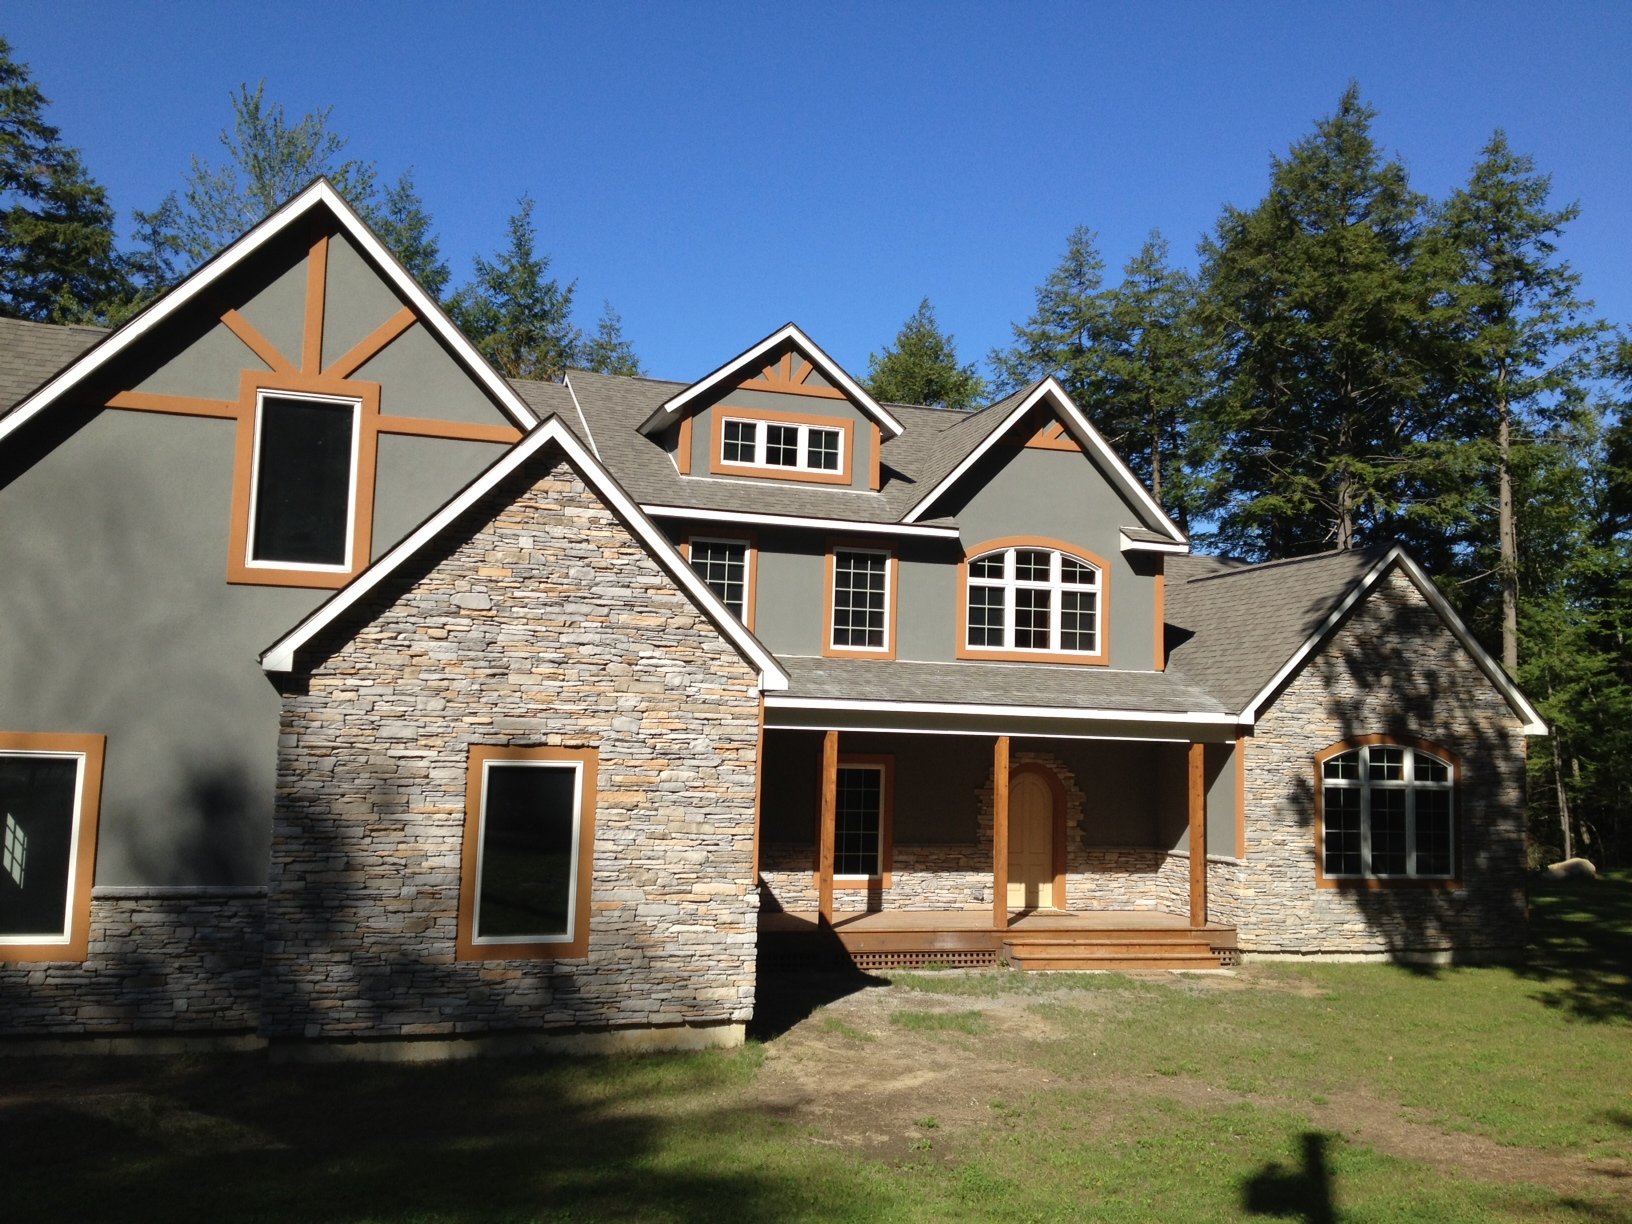 Custom modular homes saratoga construction llc for Custom built house